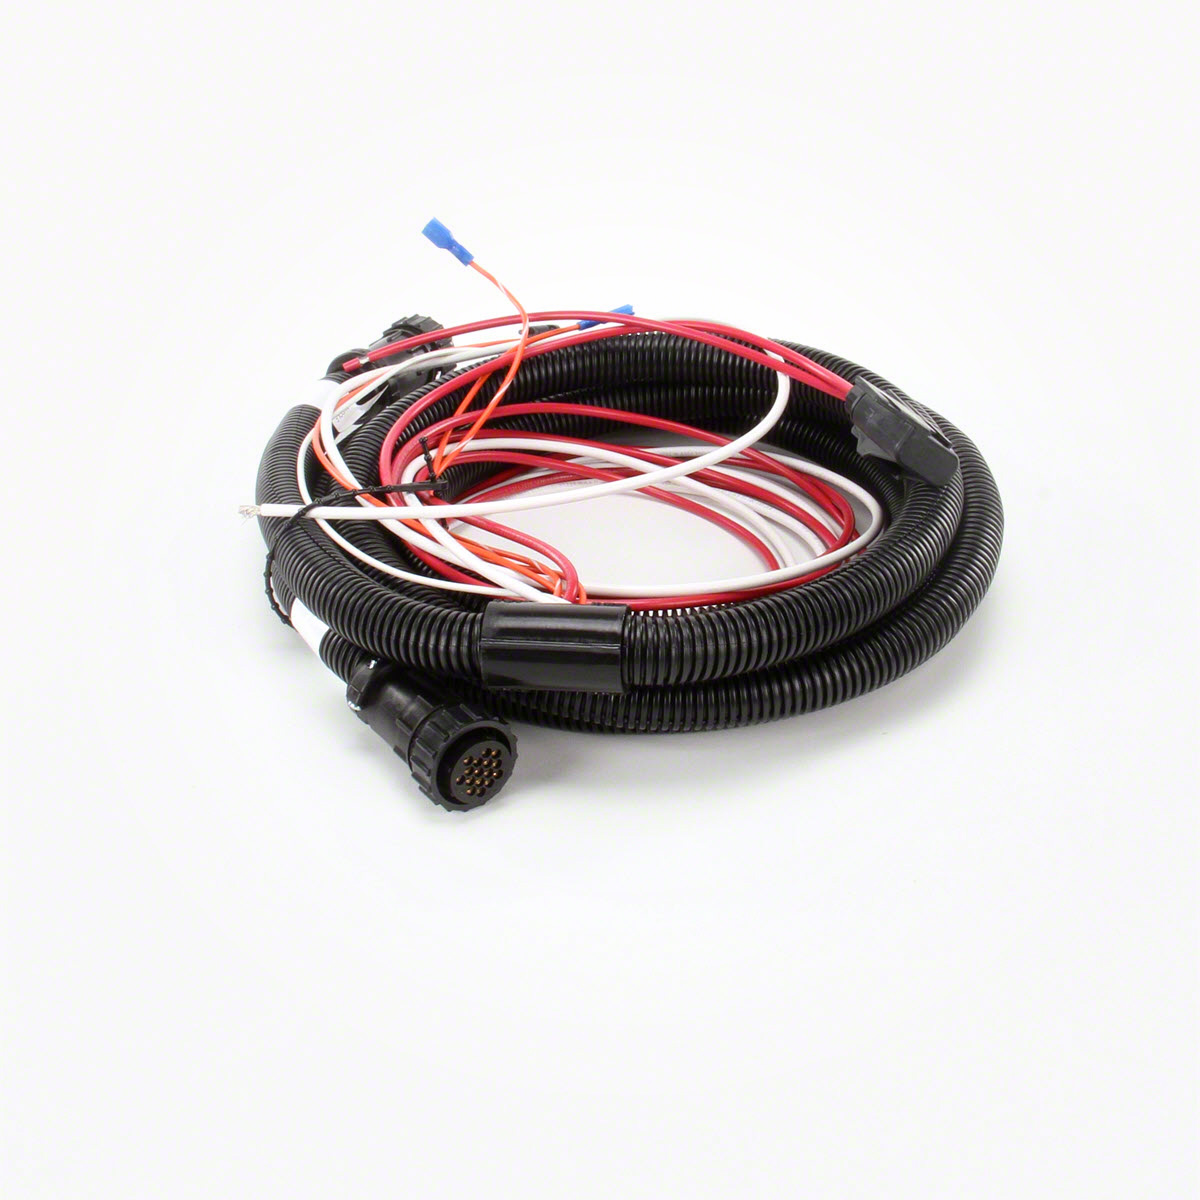 Raven 450 Sprayer Wiring Harness | Wiring Liry on